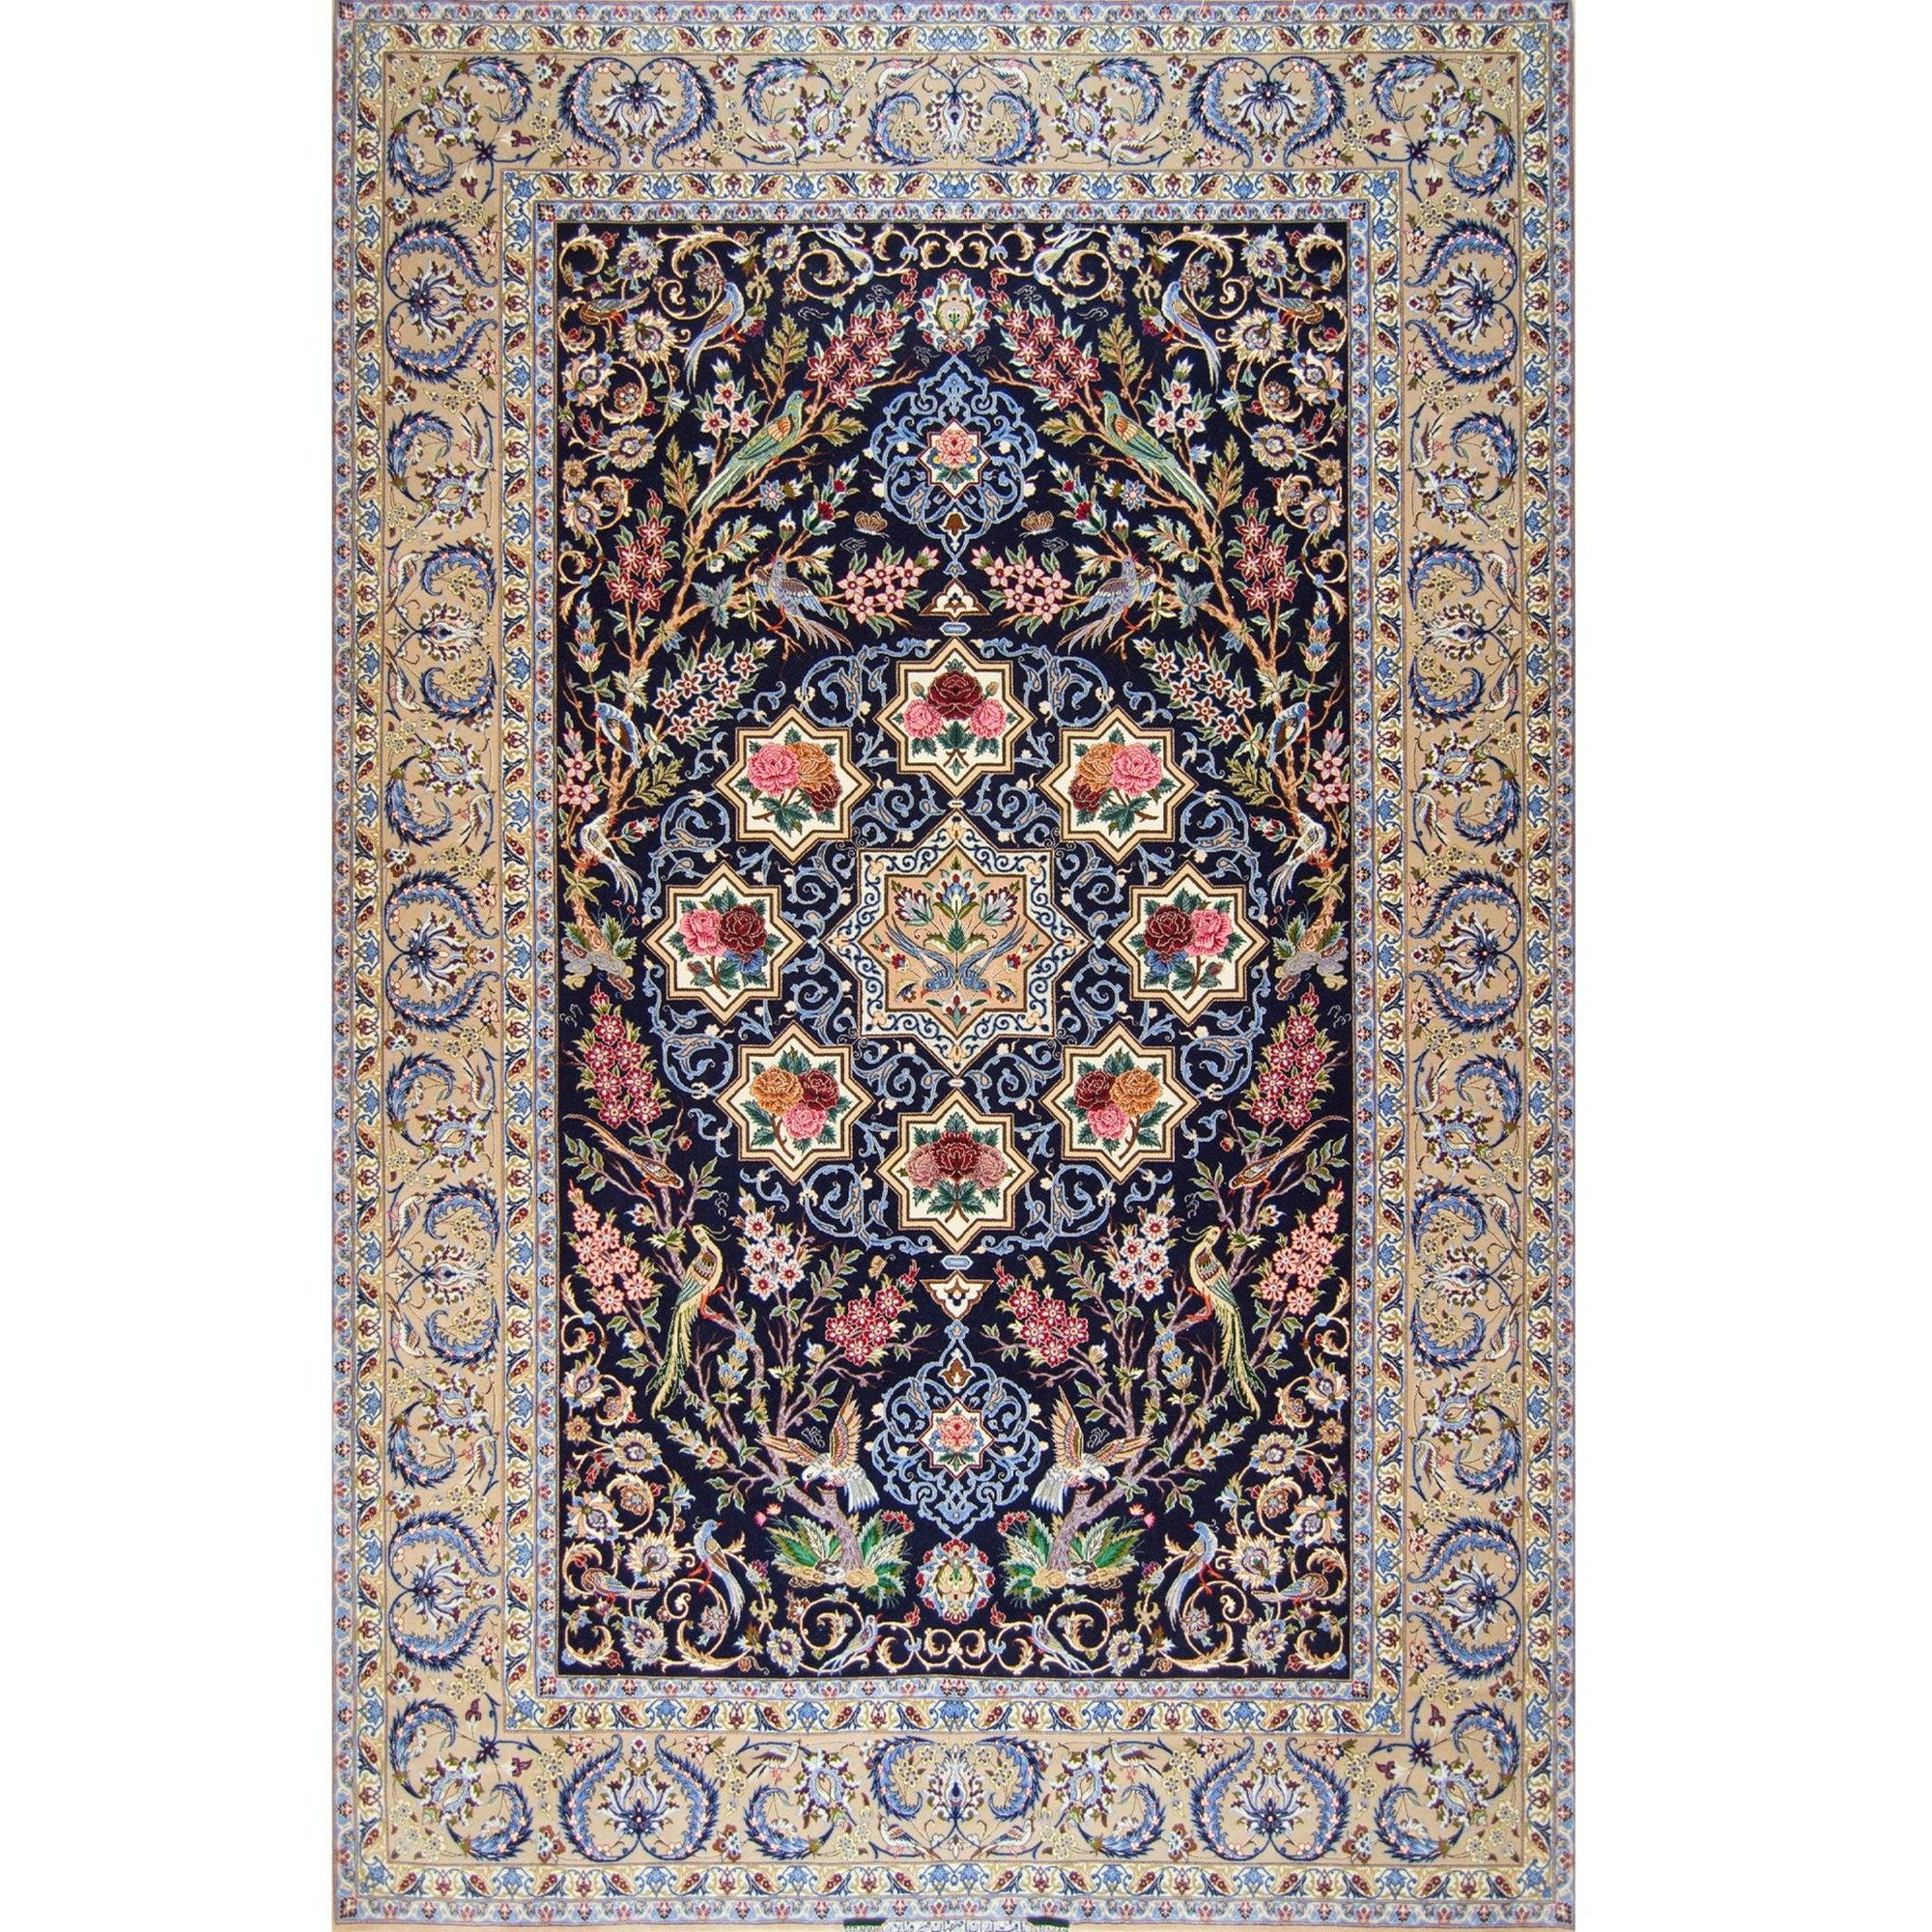 Genuine Super Fine Hand-knotted Wool Isfahan - Sierafian ( SINGED ) Persian-Rug | House-of-Haghi | NewMarket | Auckland | NZ | Handmade Persian Rugs | Hand Knotted Persian Rugs